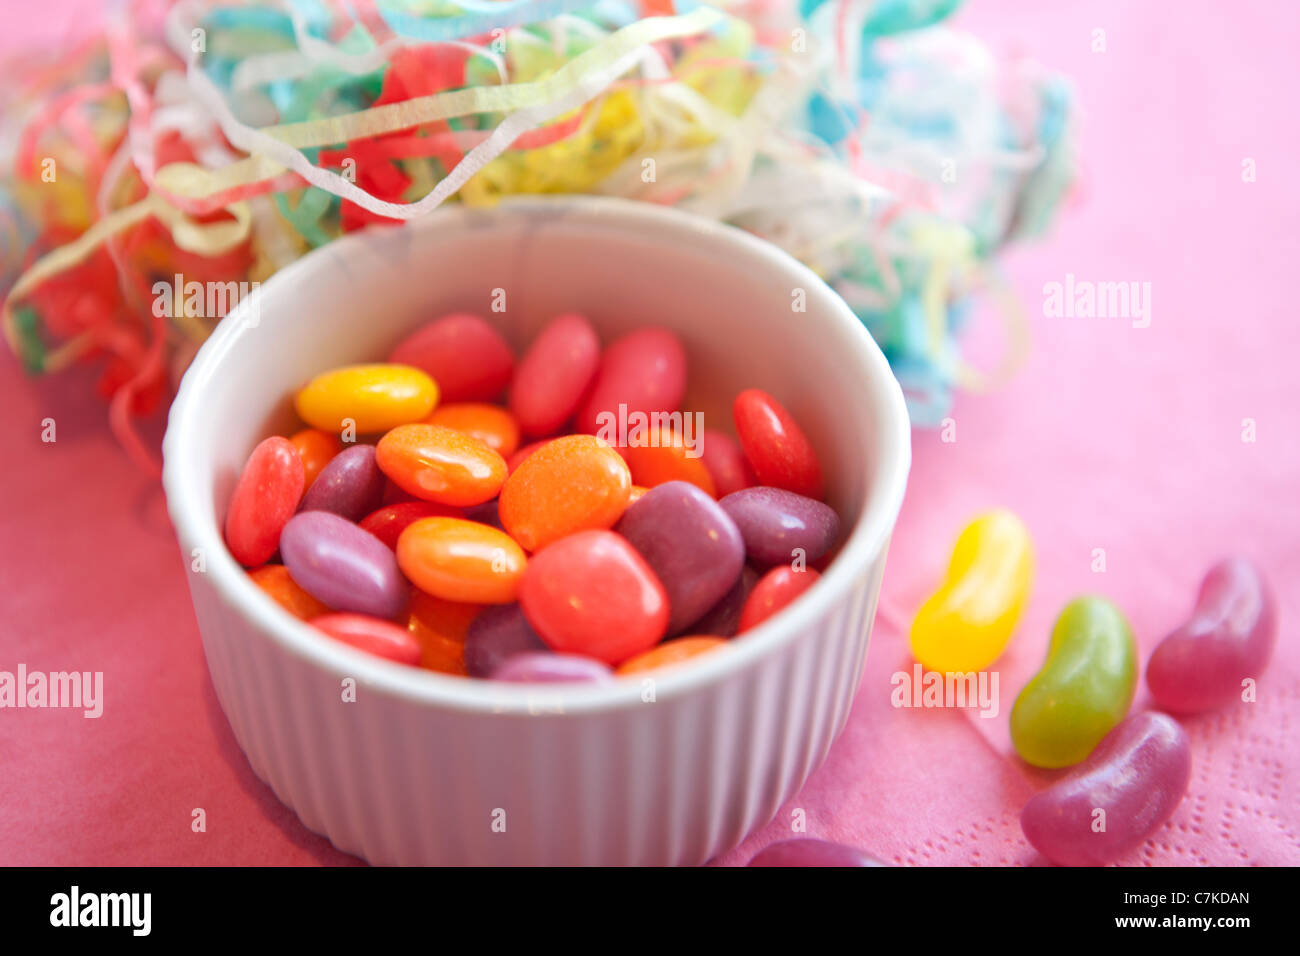 Jelly Sweets Stock Photos & Jelly Sweets Stock Images - Page 2 - Alamy